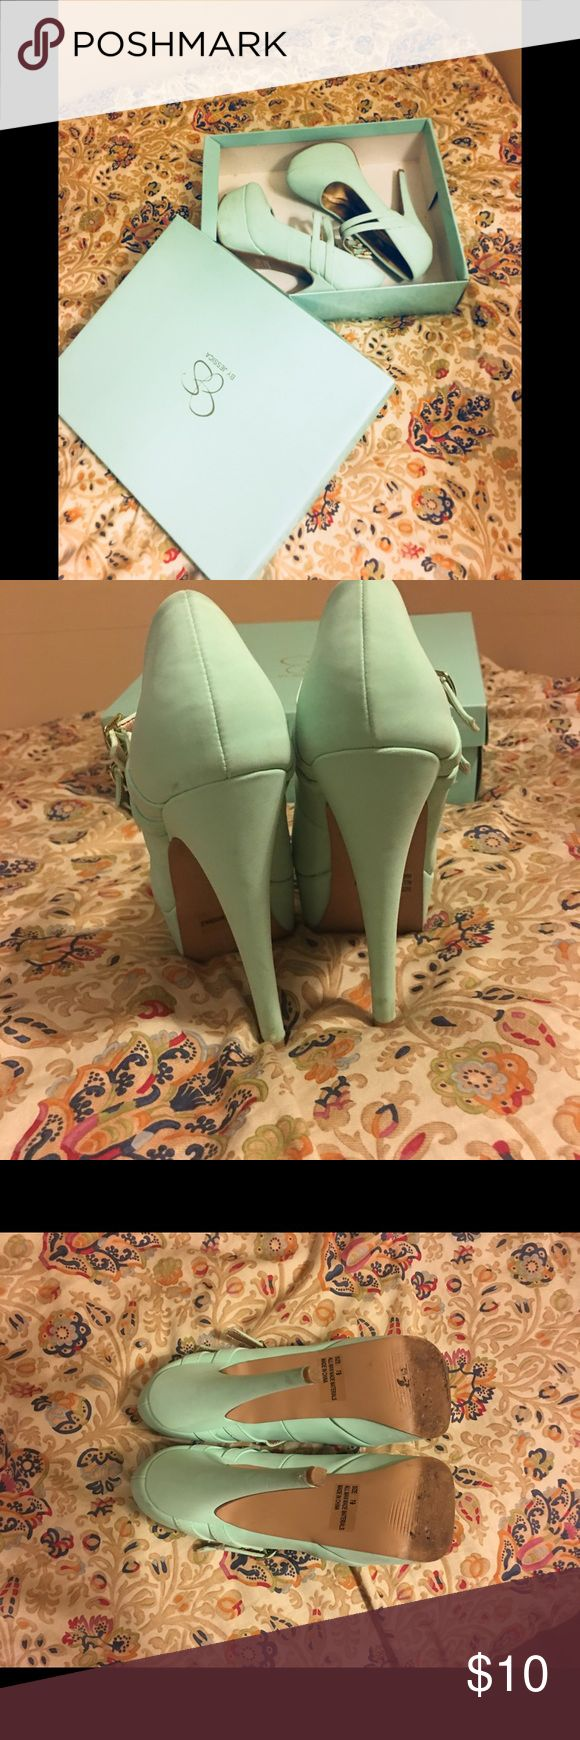 Mint Green Heels 7 1/2 ⚜️👠 Qupid Mint Green Heels 👠 7 1/2 Qupid Brand  *used (tiny smudges on shoes as shown in picture can most likely be carefully wiped off) I only wore these shoes 2 times.  In good condition. *box is Jessica Simpson does not come with it I just stored the shoes in that box since it was mint green. All bundle orders over 5lbs will be canceled 🛍🌿 Qupid Shoes Heels